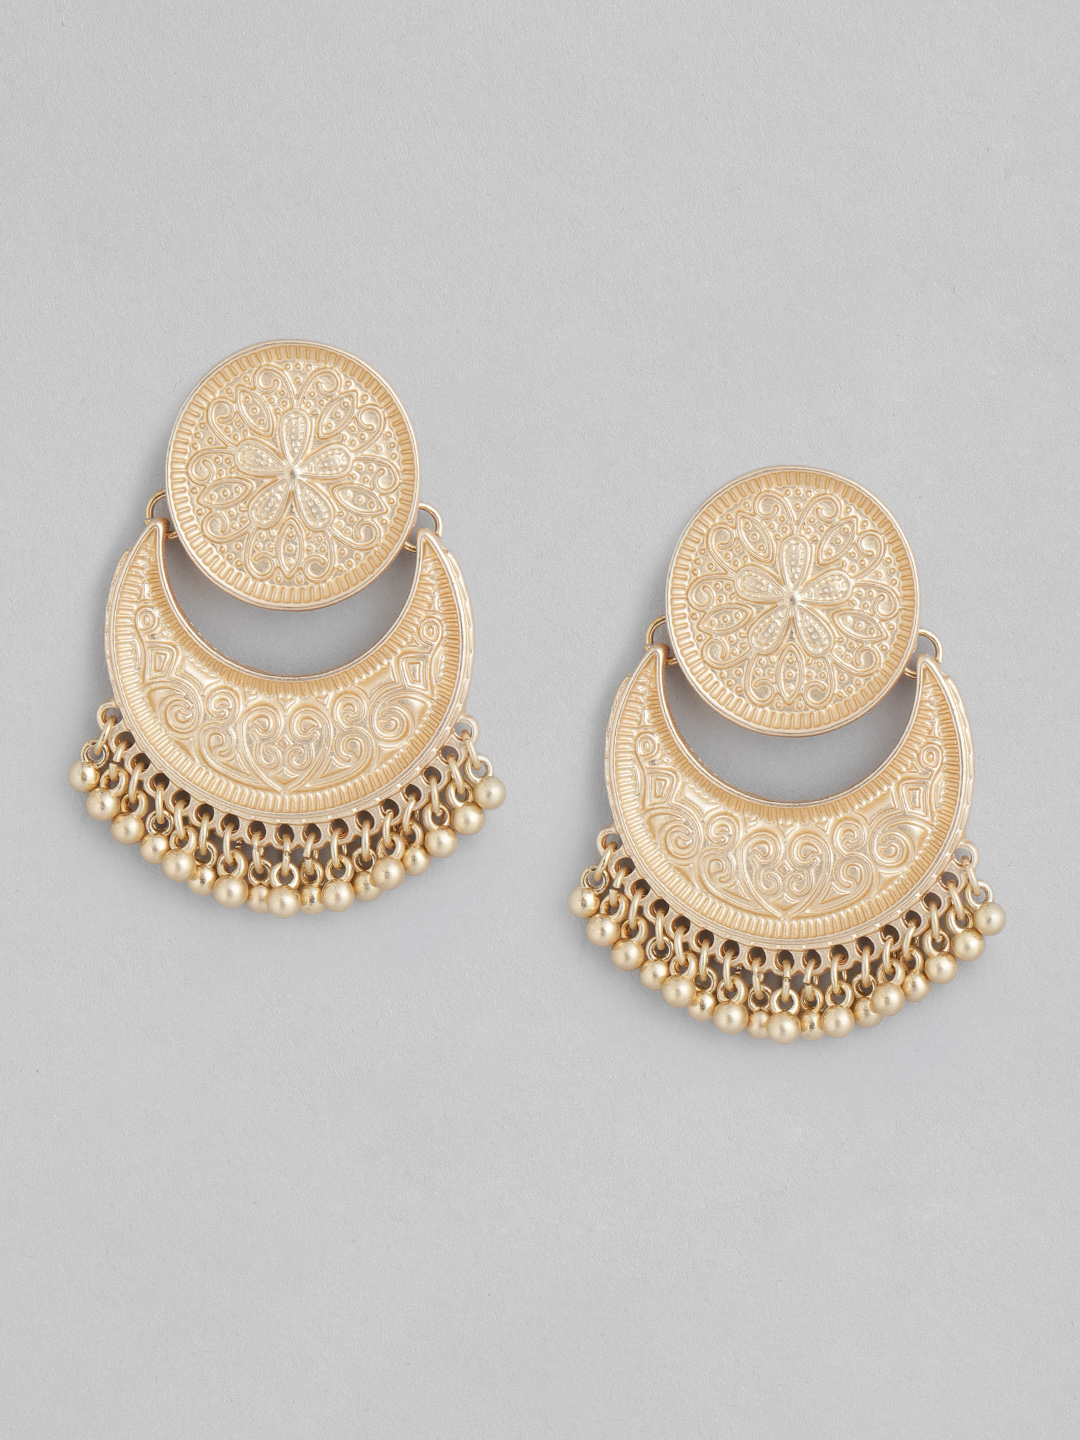 Earrings-The Intricacies Of Gold Earrings1